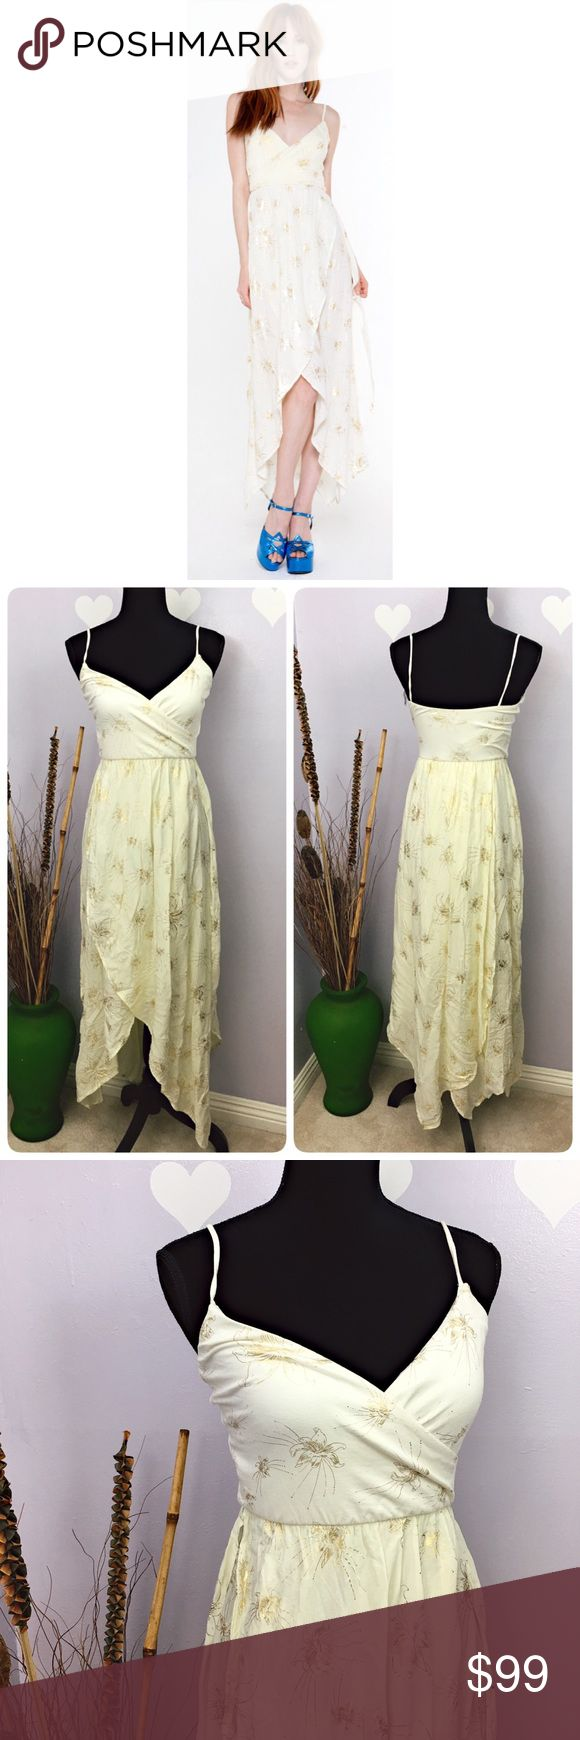 Novella Royale Peny Gold Lilly Dress Free People Brand New Novella Royale Penny Gold Lilly Dress Size label M Nonadjustable spaghetti strap with paneled handkerchief skirt.  Style NR13PEN  100% rayon  Made in USA   Length approx: 28 Novella Royale Dresses Asymmetrical